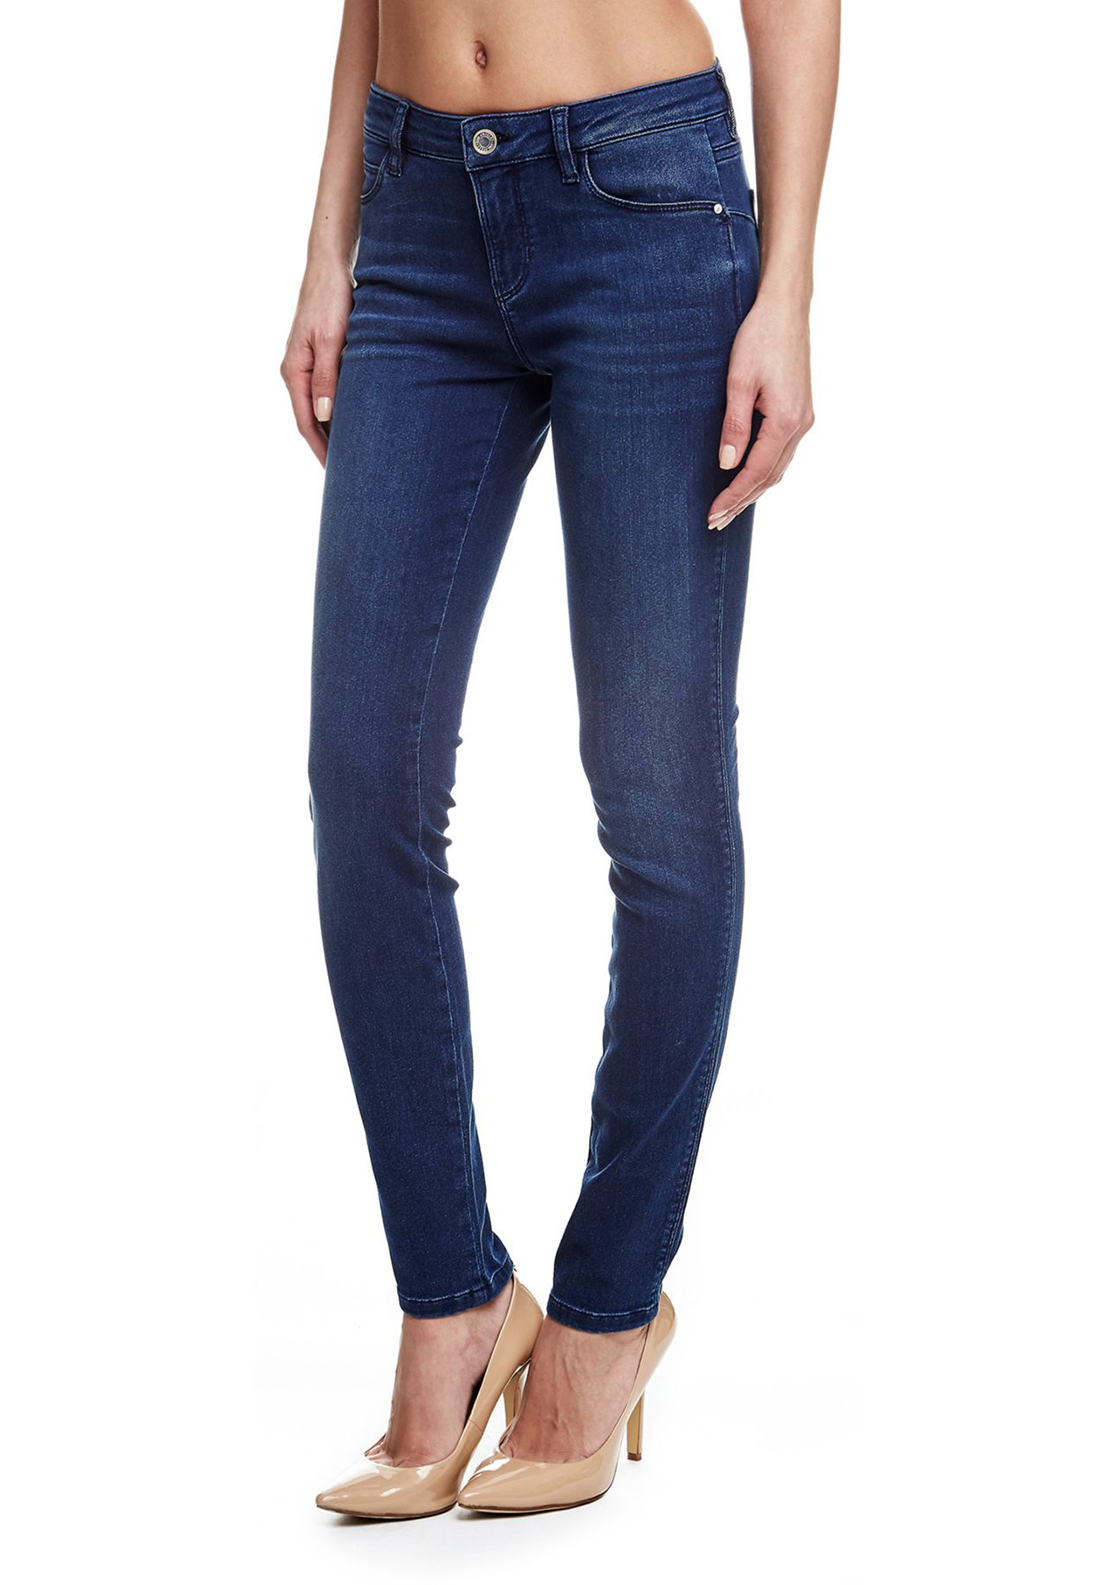 Guess Womens Curve Skinny Jeans, Blue